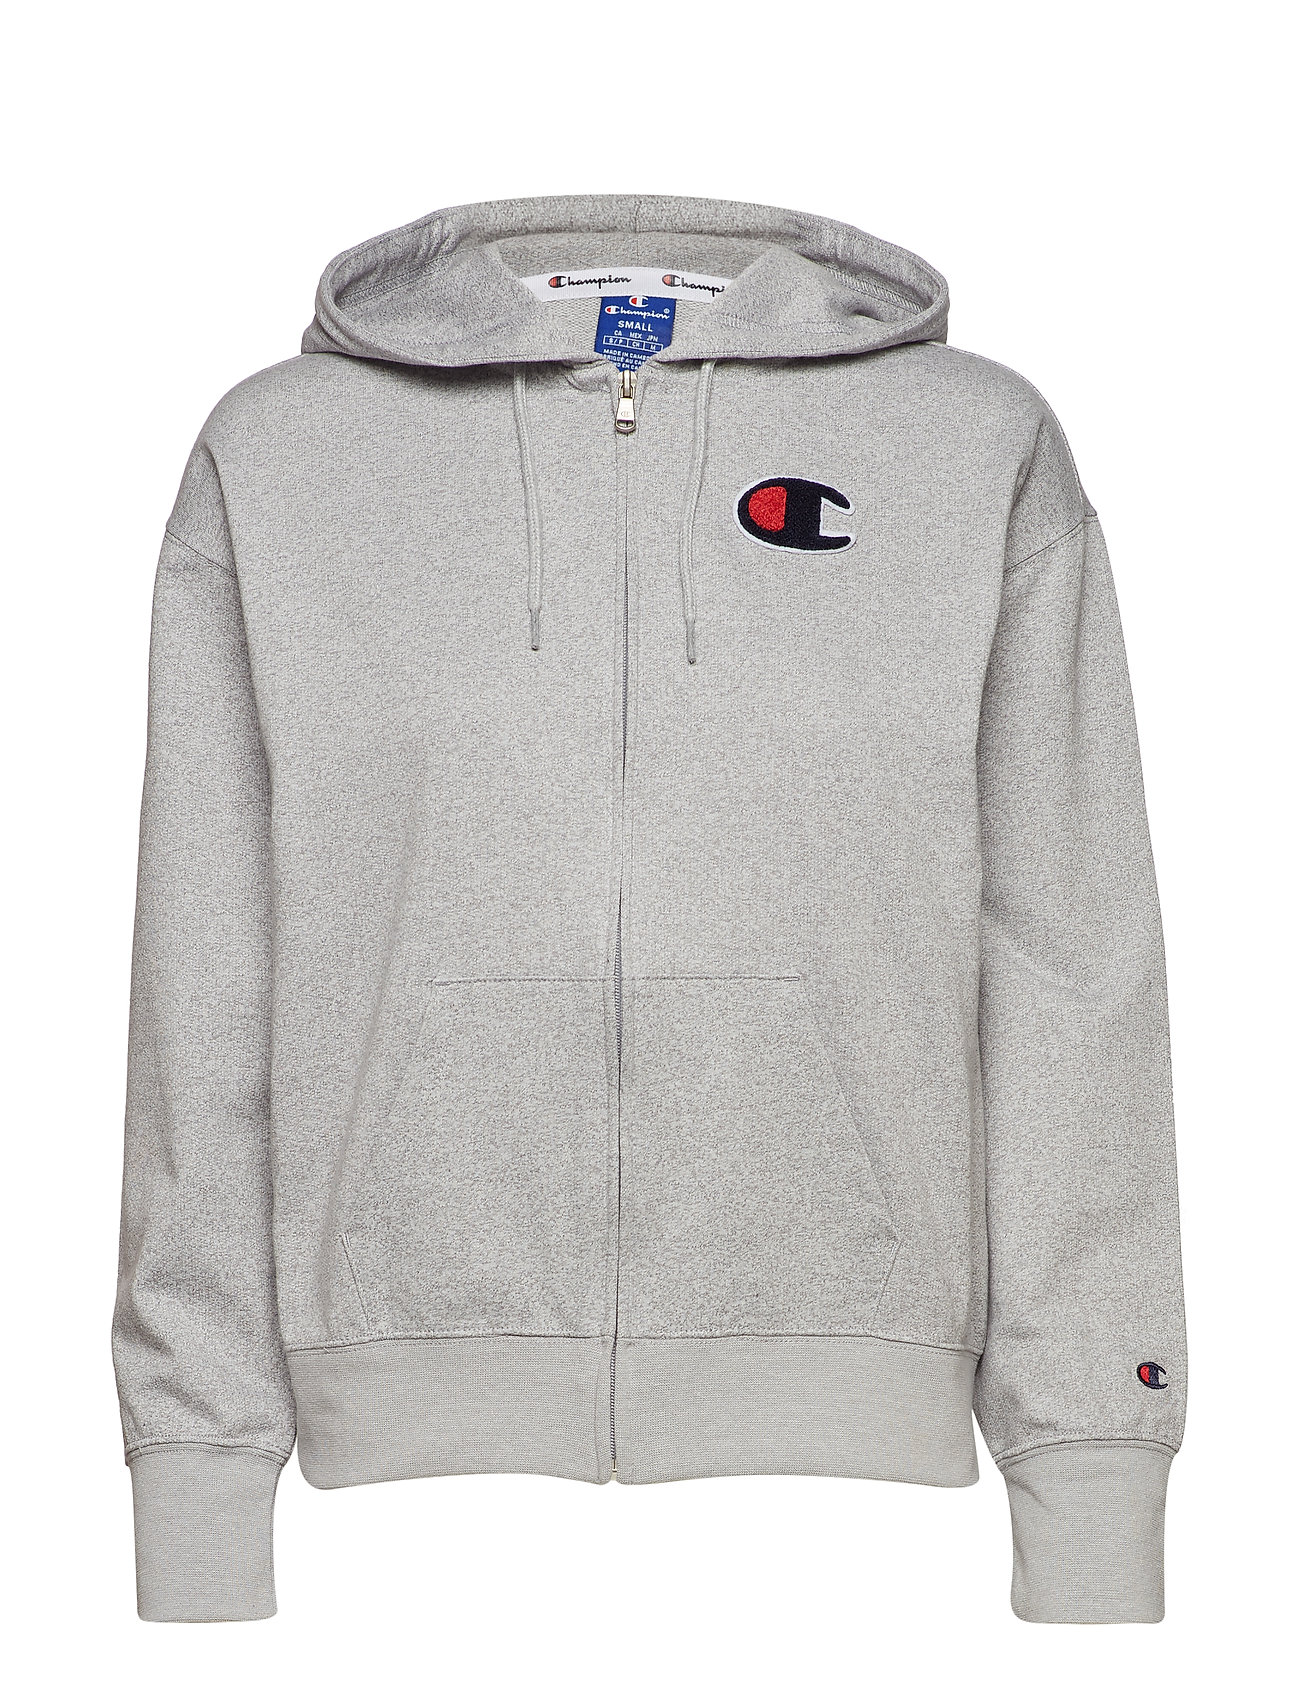 Champion Rochester Hooded Full Zip Sweatshirt - GREY